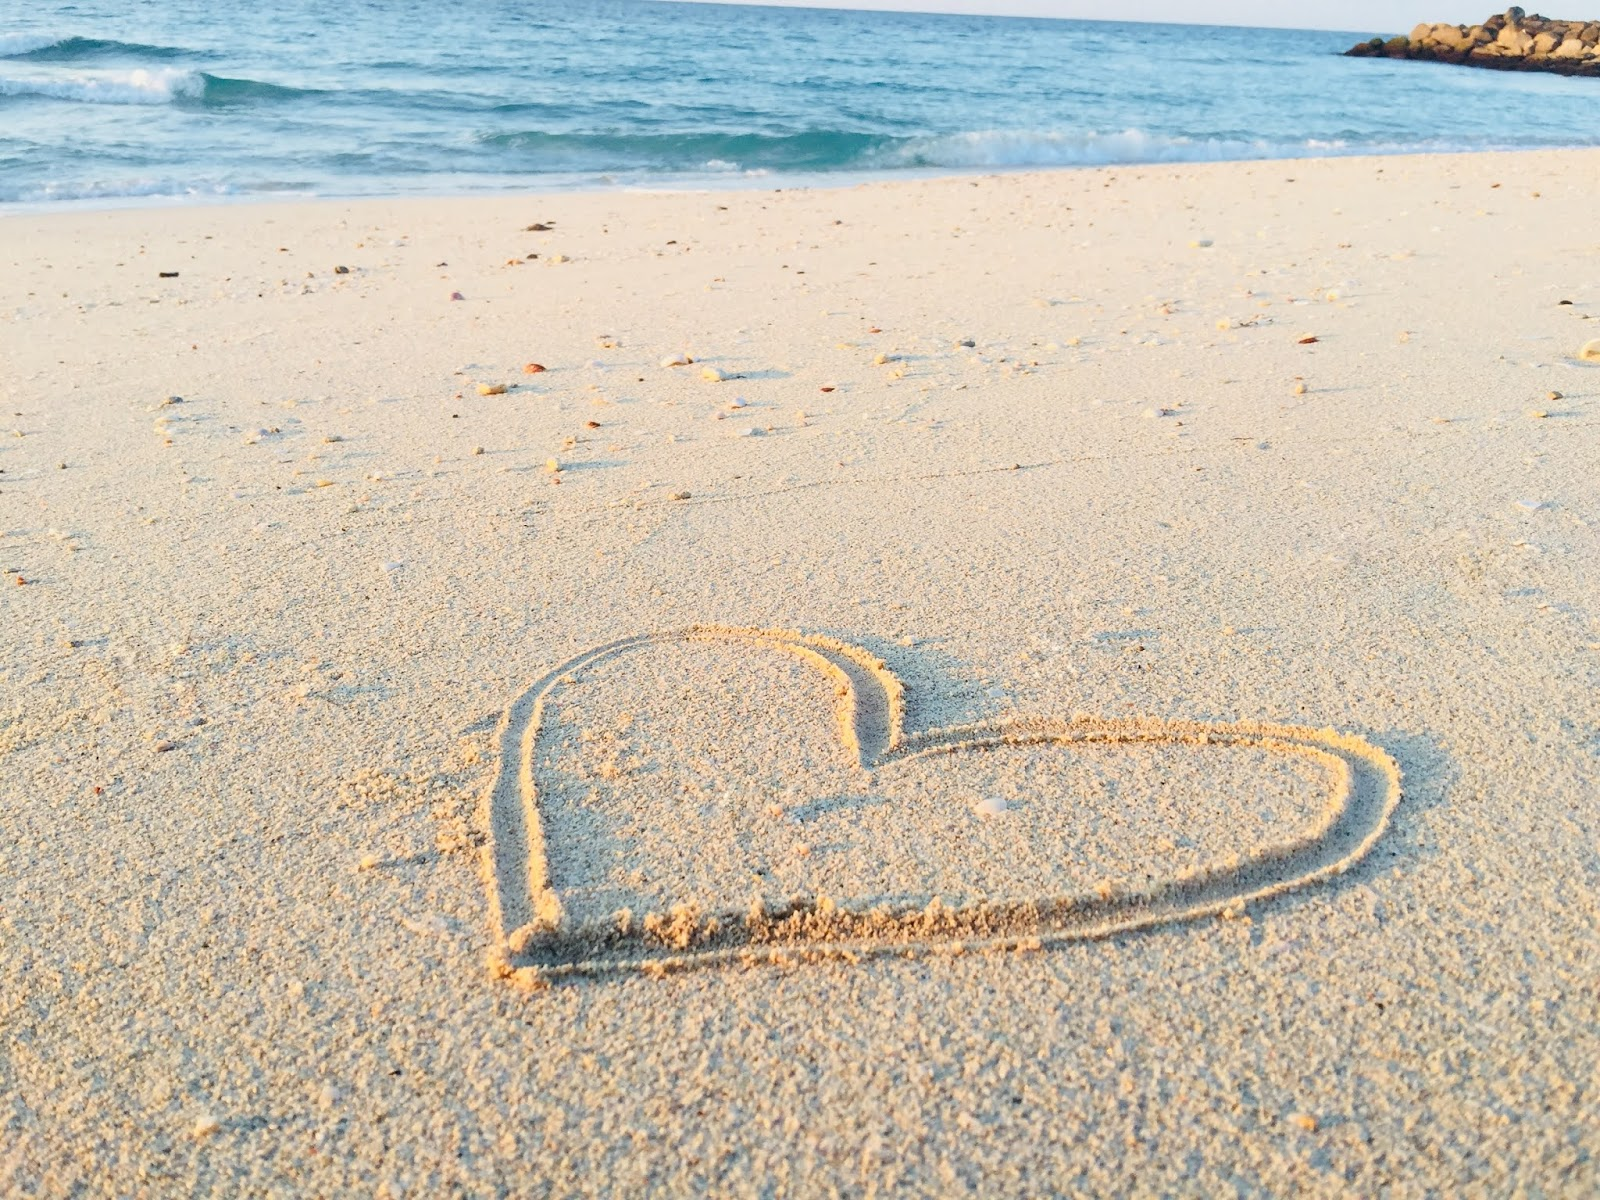 Hand made heart shape on beach sand image